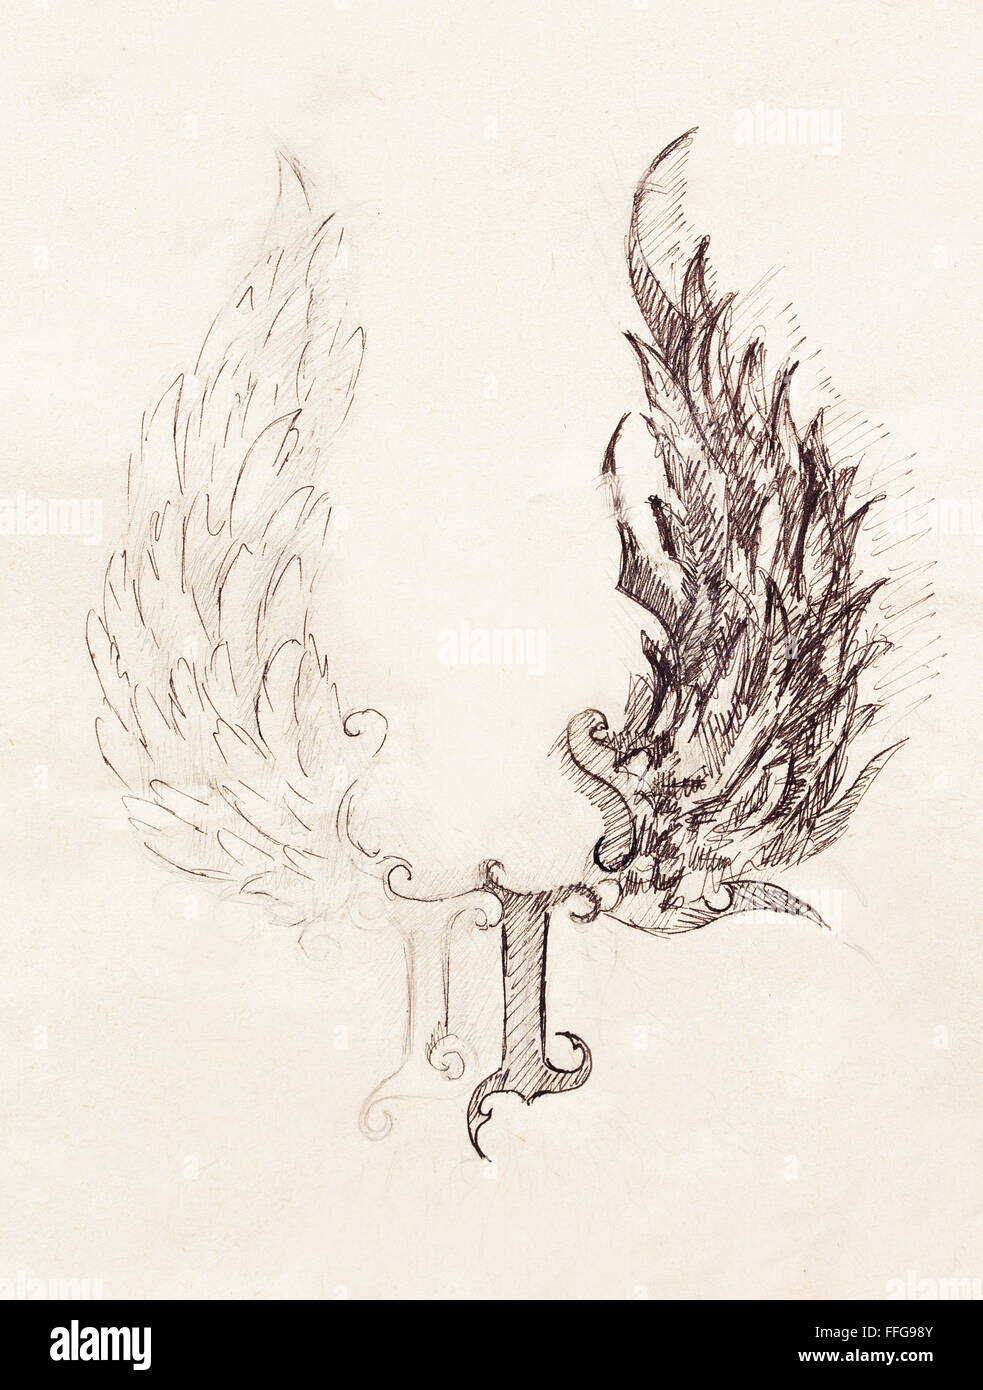 Pencil drawing on old paper angel wings and rome number god and devil wings